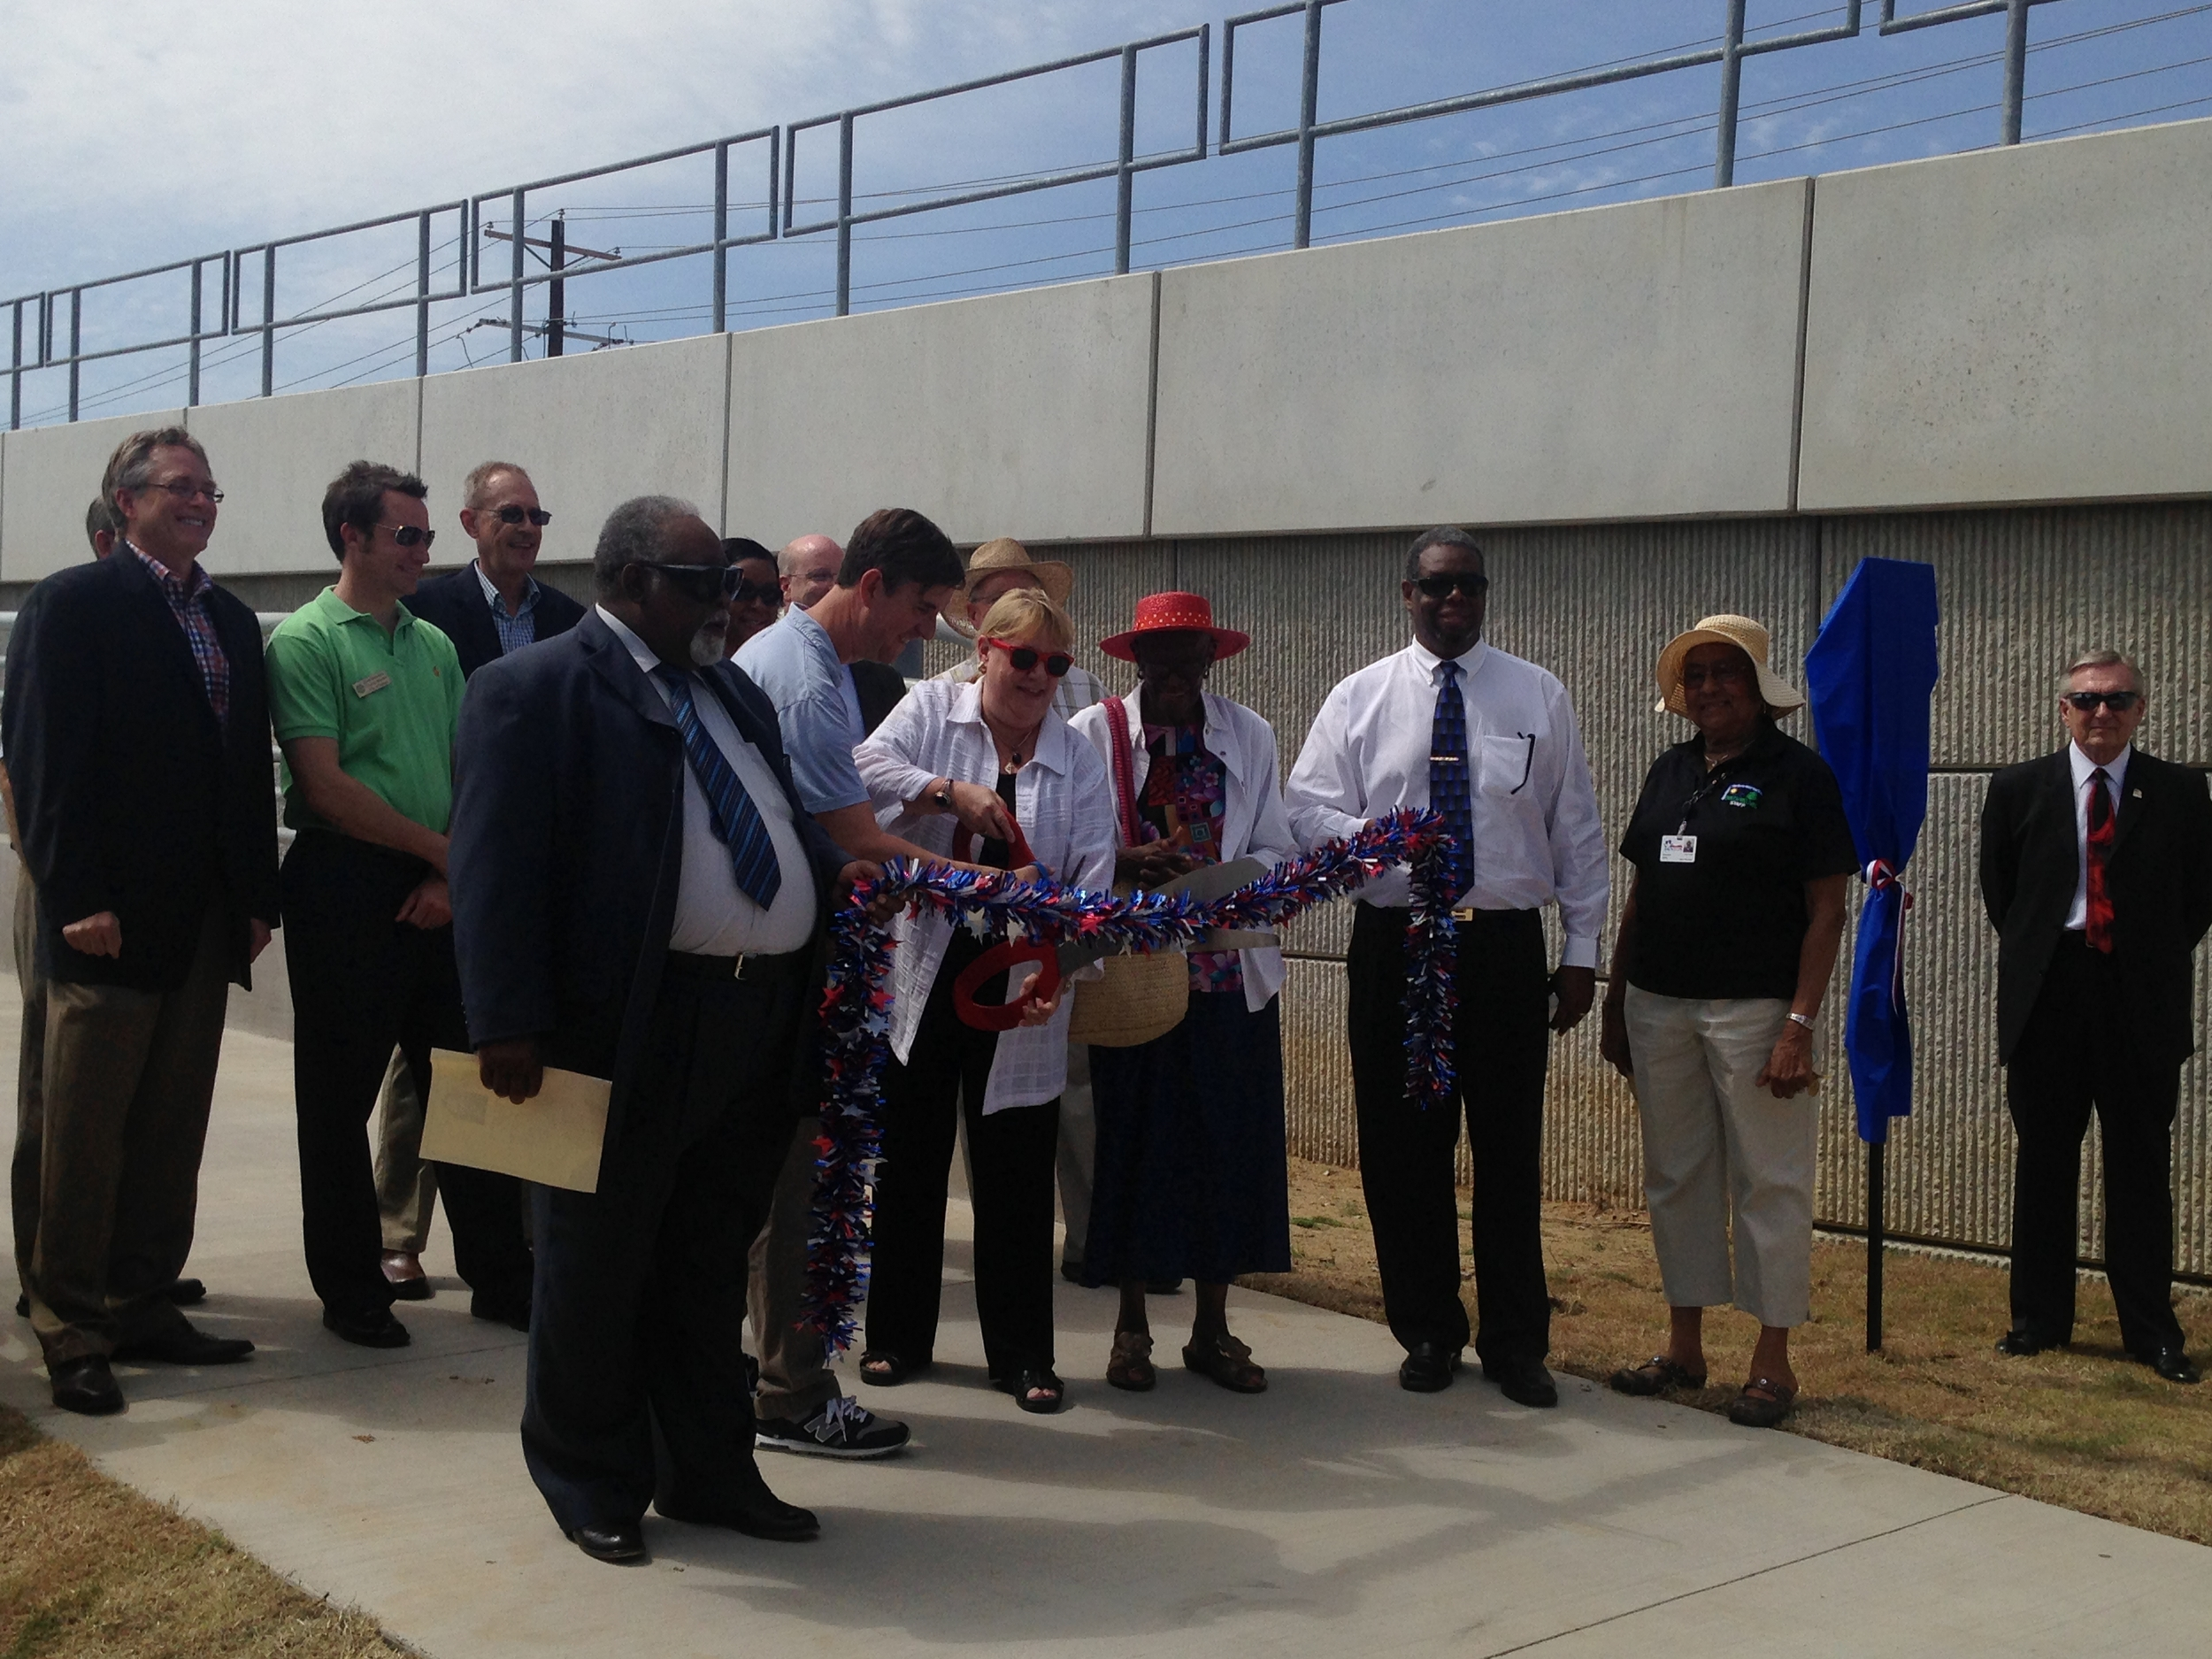 Pete Kamp and Kevin Roden cutting the ribbon for the new MLK bridge